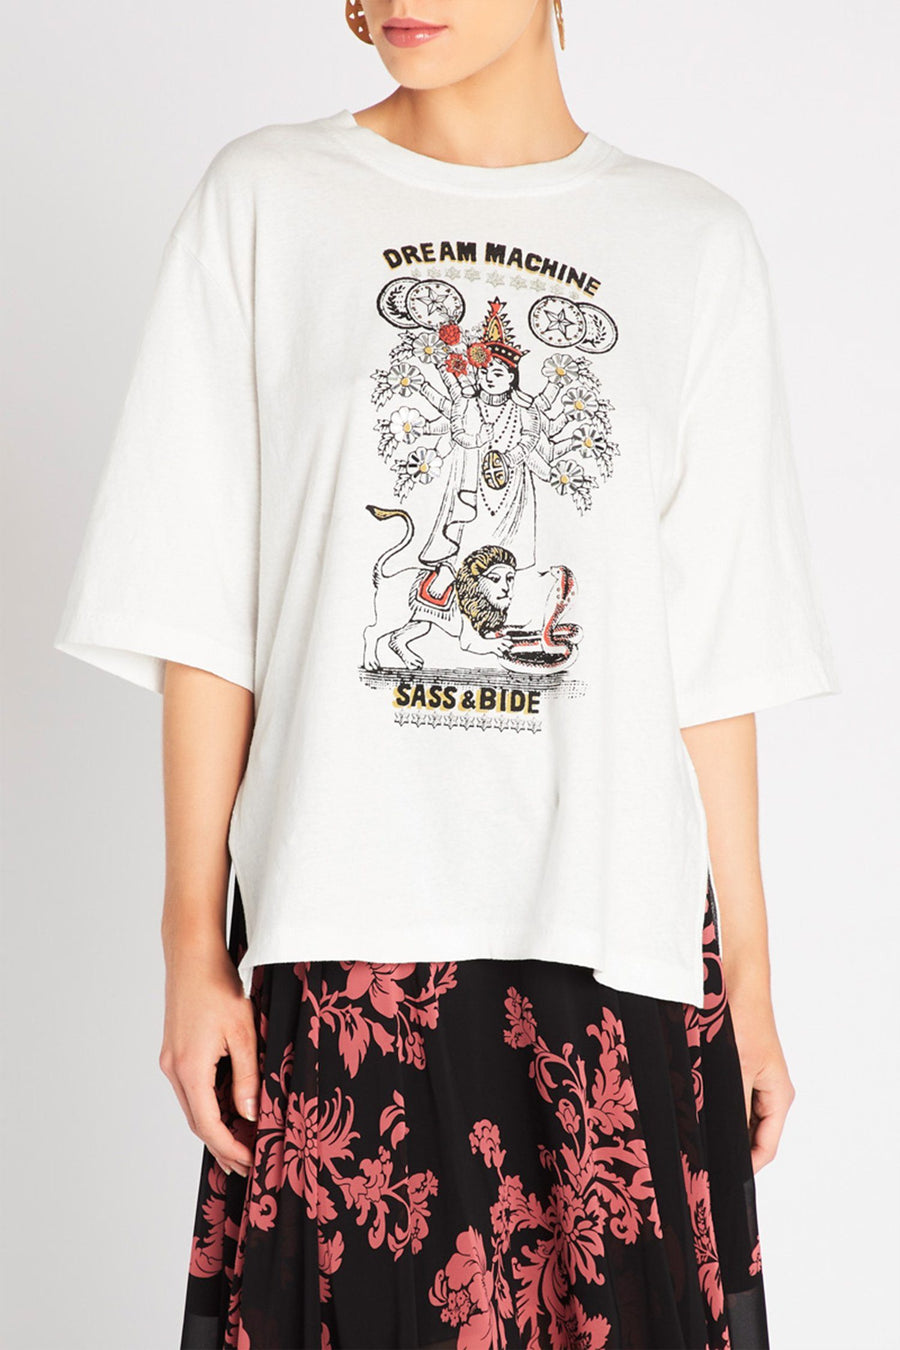 Dream Machine Tee